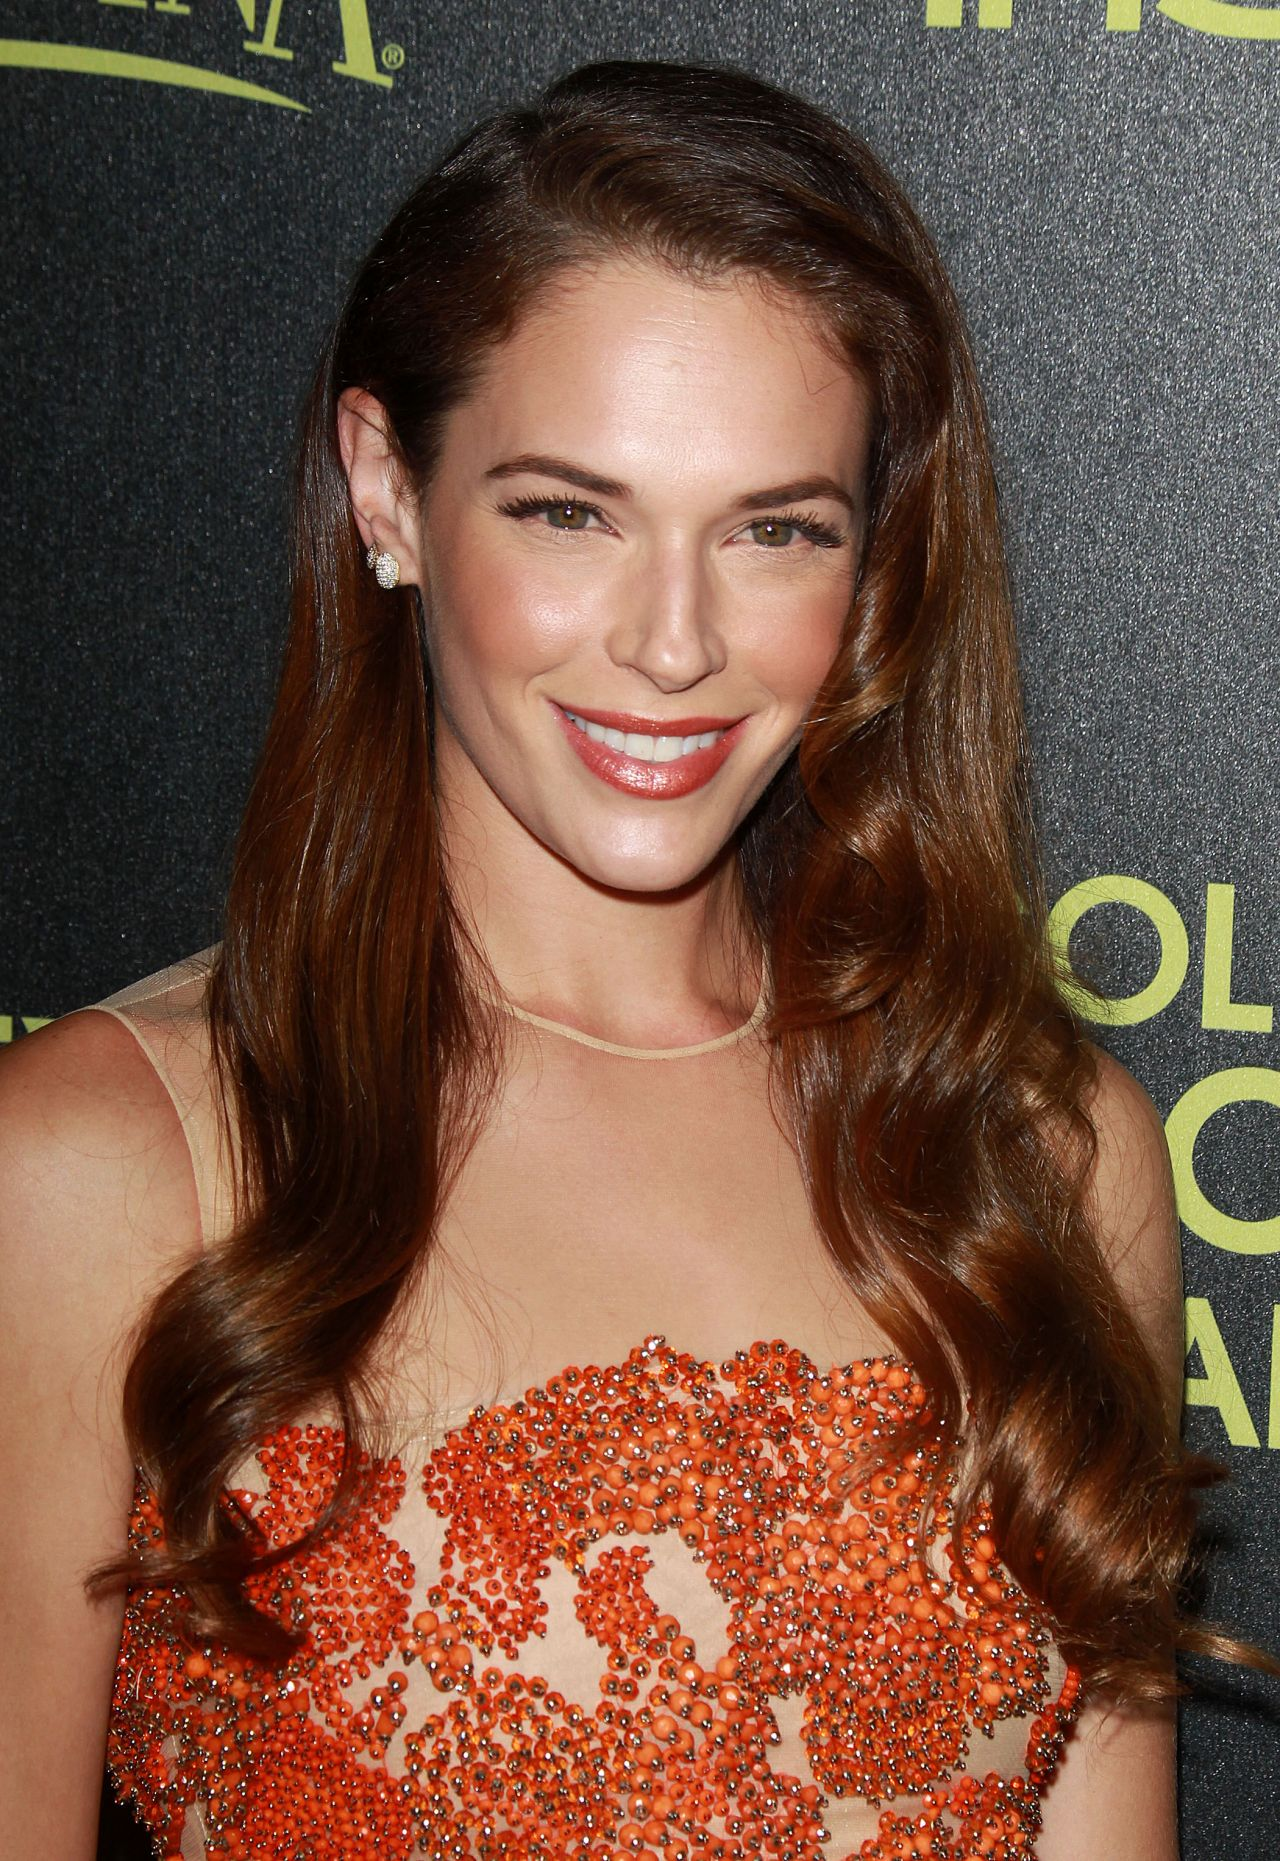 http://celebmafia.com/wp-content/uploads/2014/11/amanda-righetti-hfpa-and-instyle-s-celebration-of-the-2015-golden-globe-award-season-in-west-hollywood_3.jpg